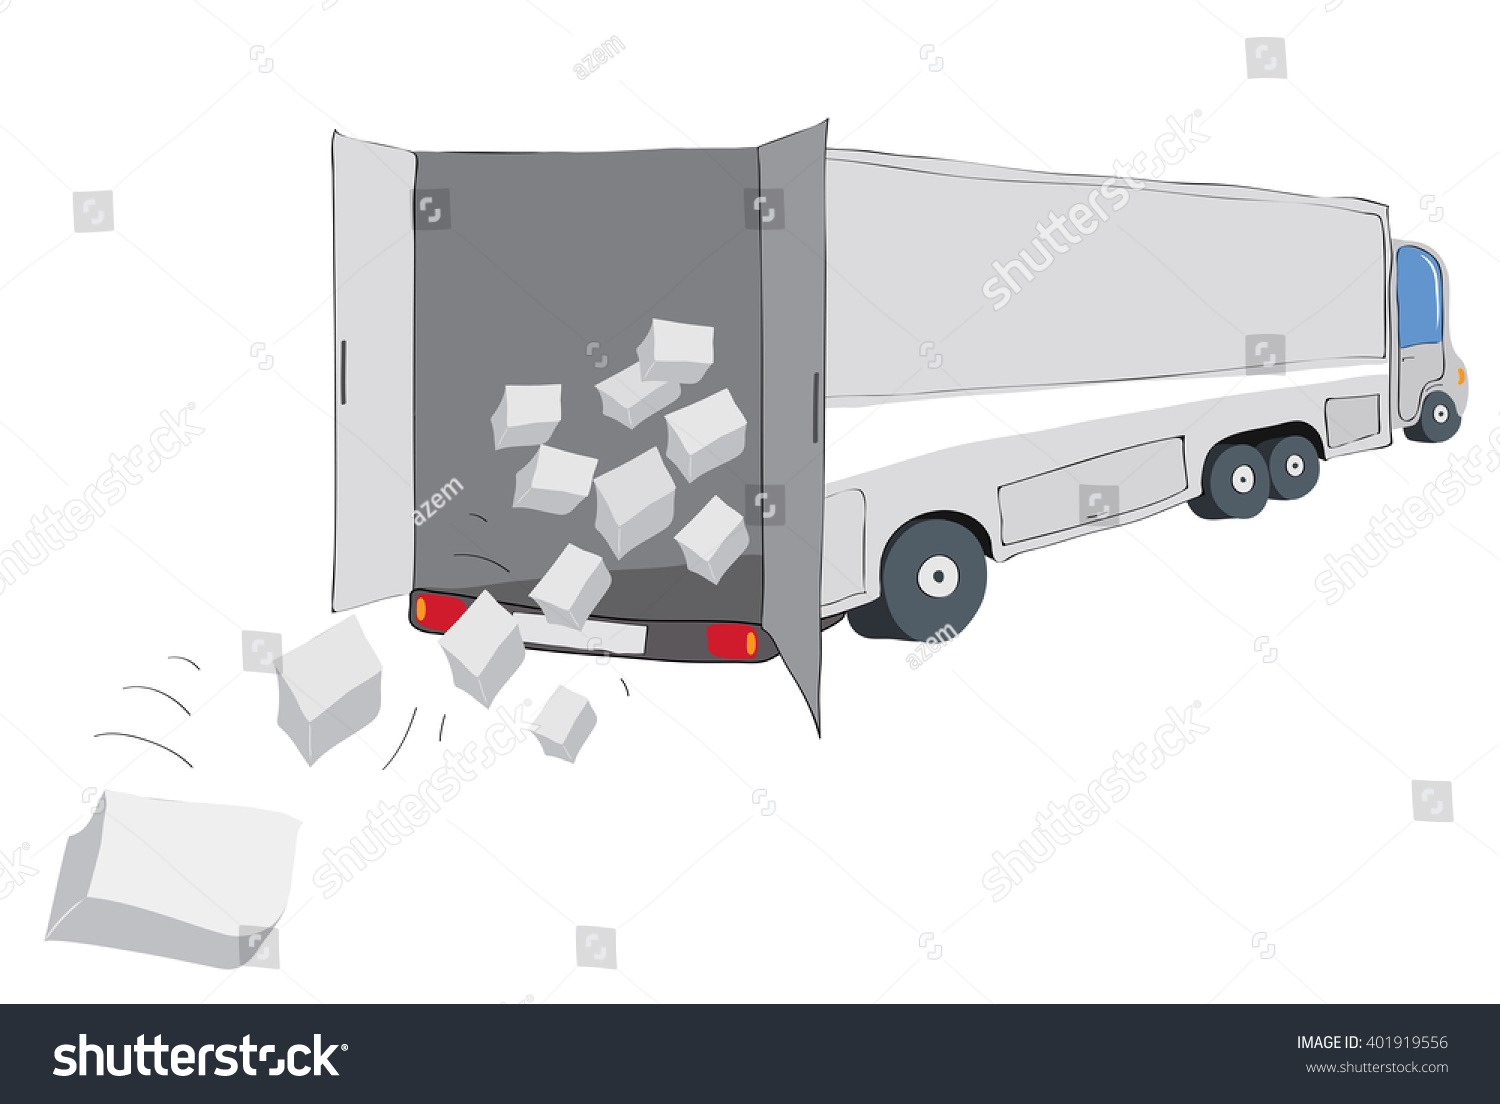 Loss of valuable cargo has fallen from a truck cargo transportation insurance